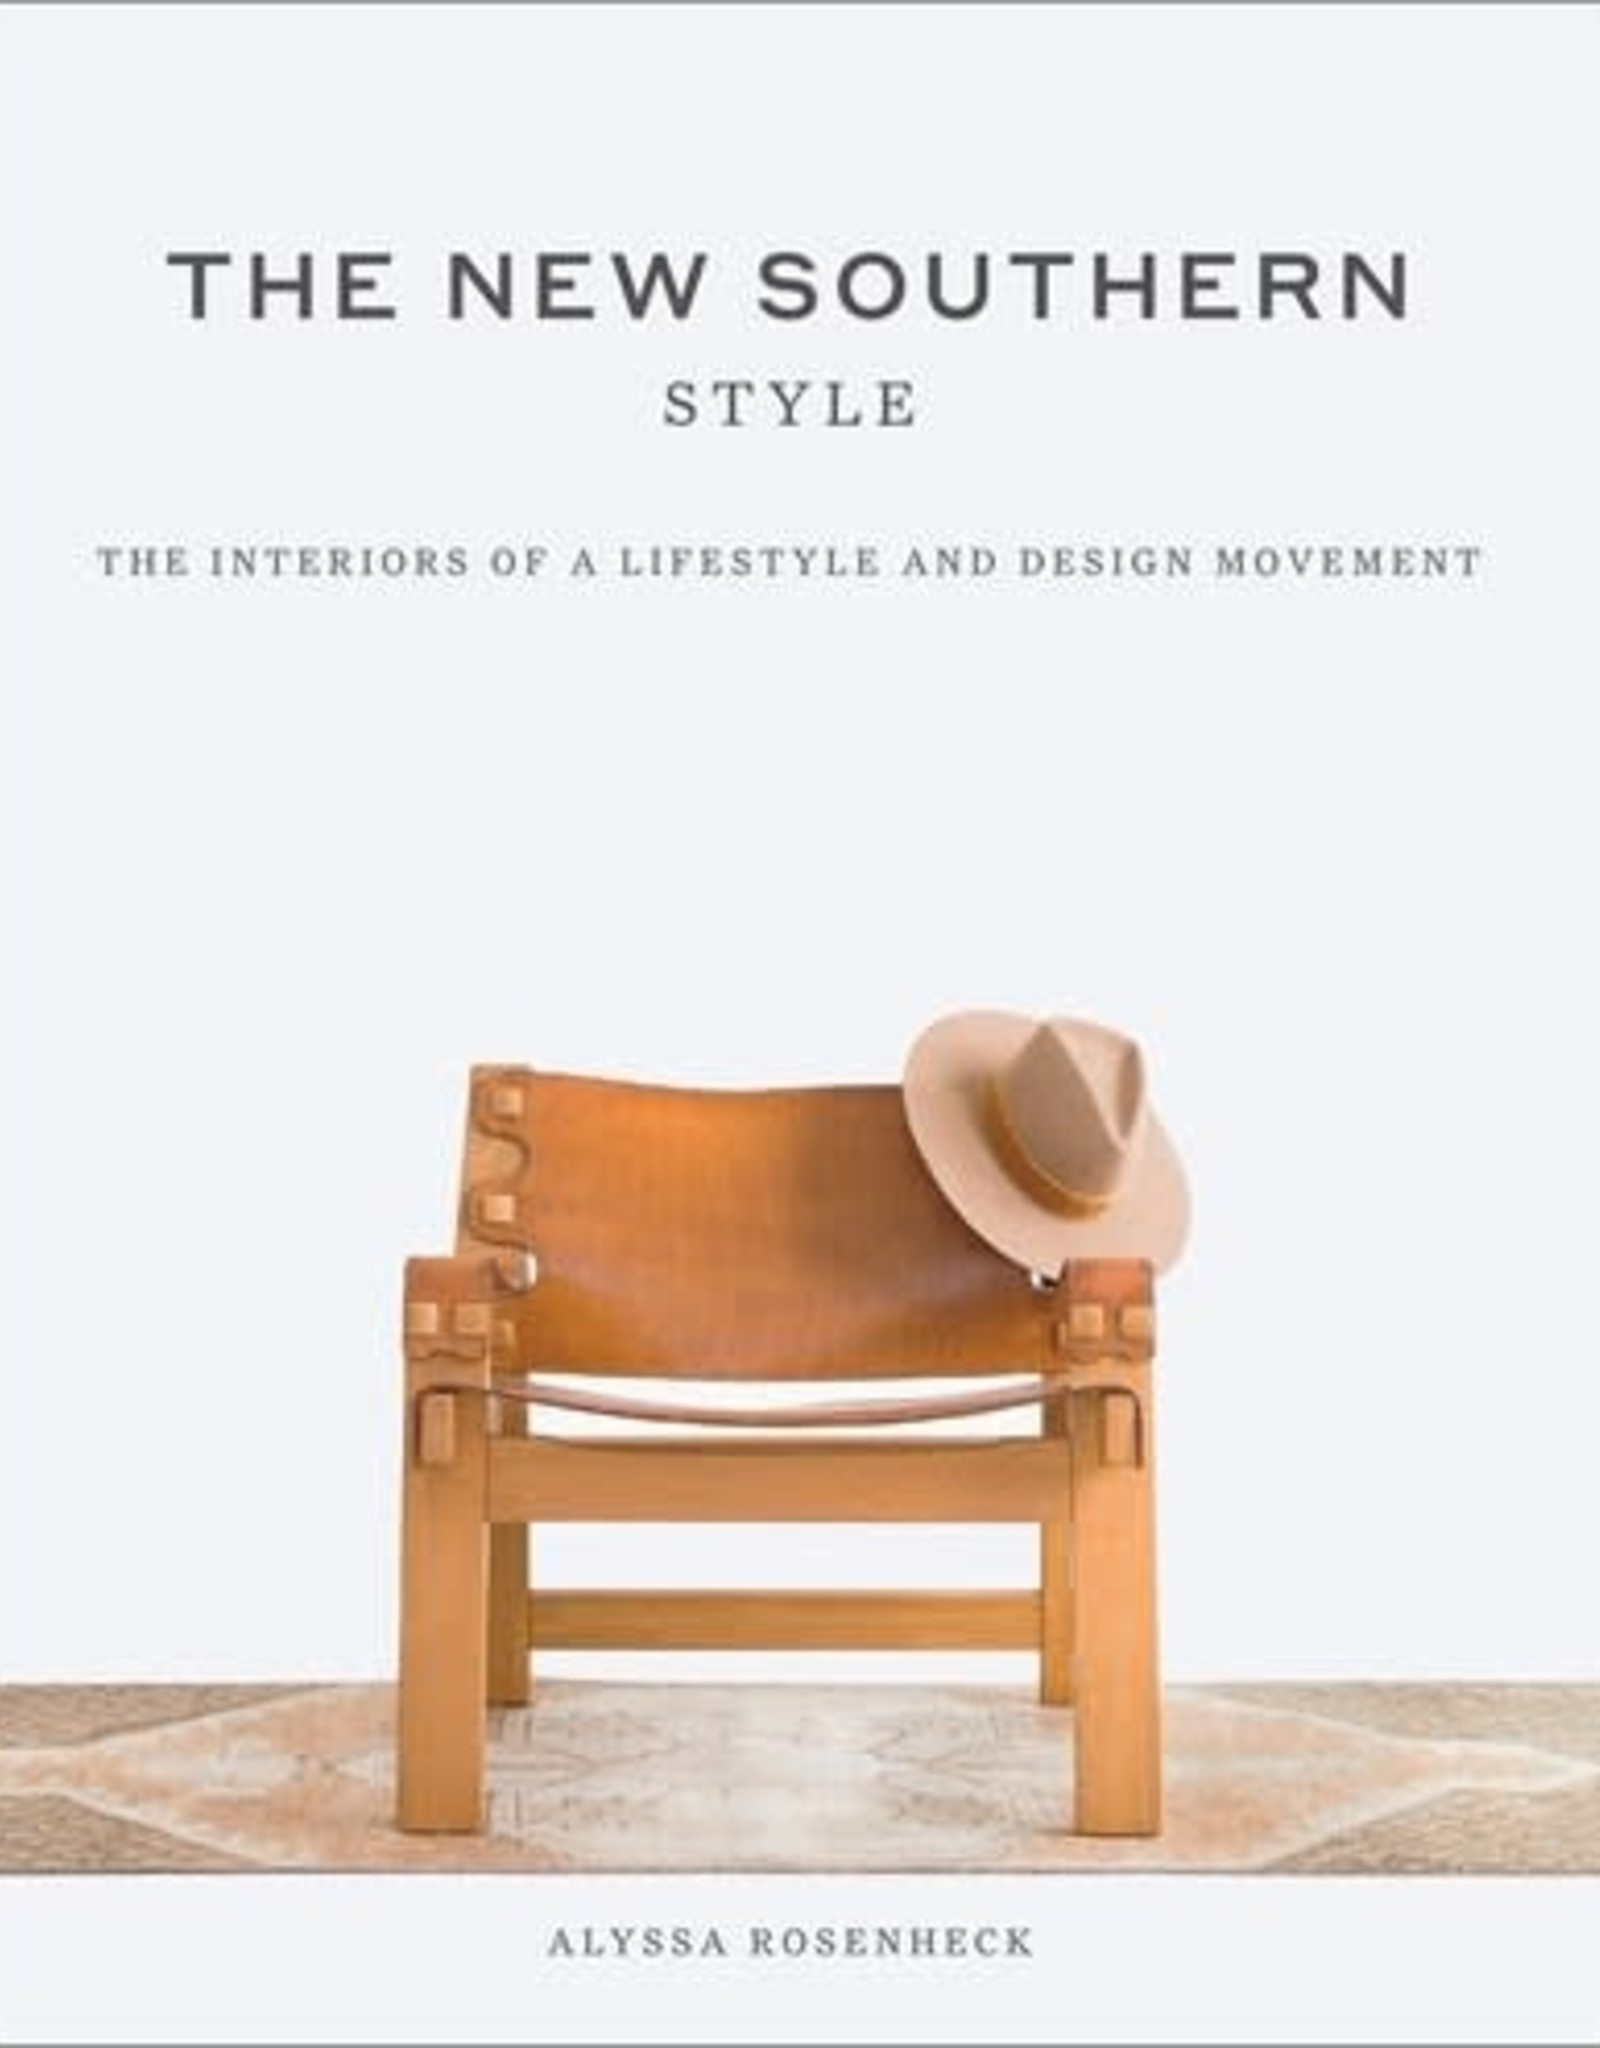 ABRAMS-STEWART TABORI AND CHANG THE NEW SOUTHERN STYLE